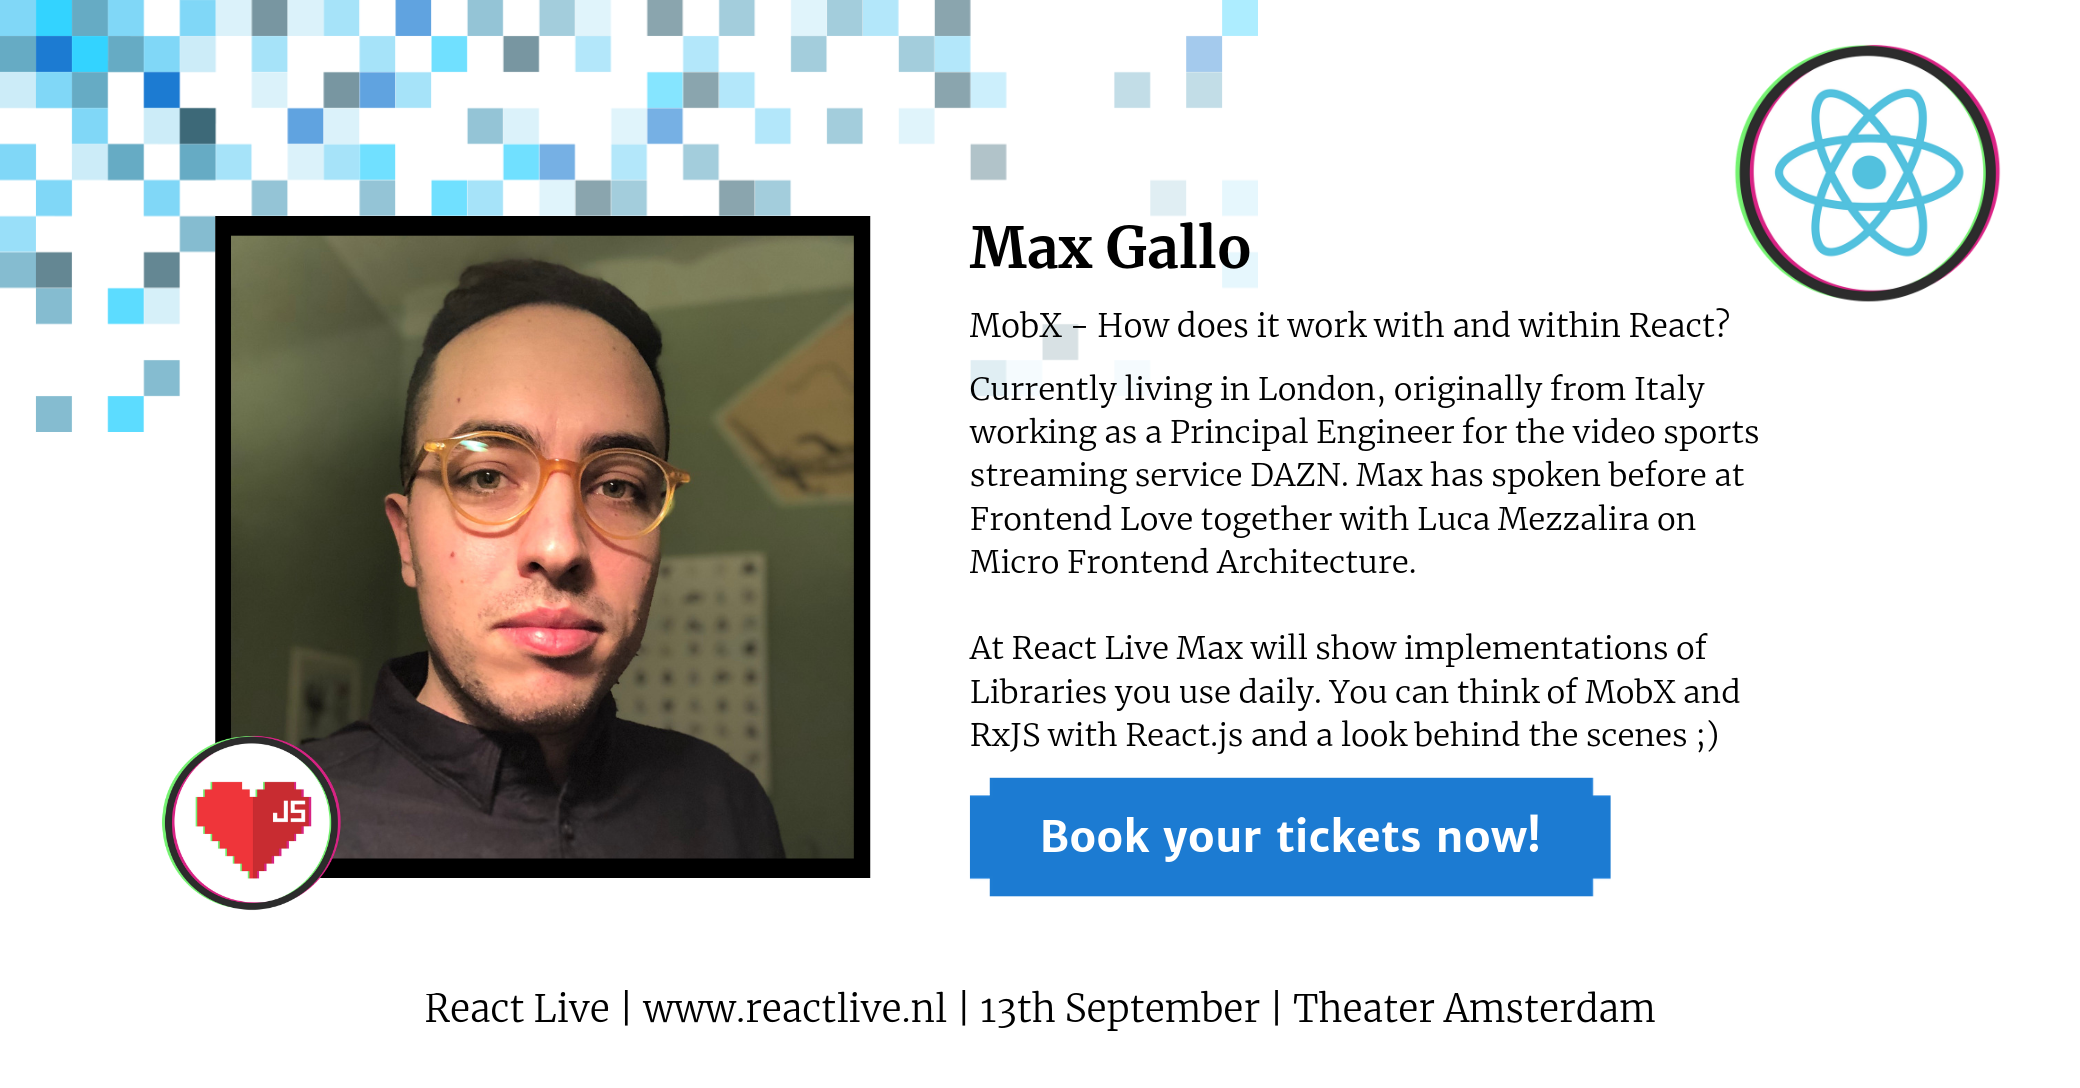 Max Gallo DAZN at React Live